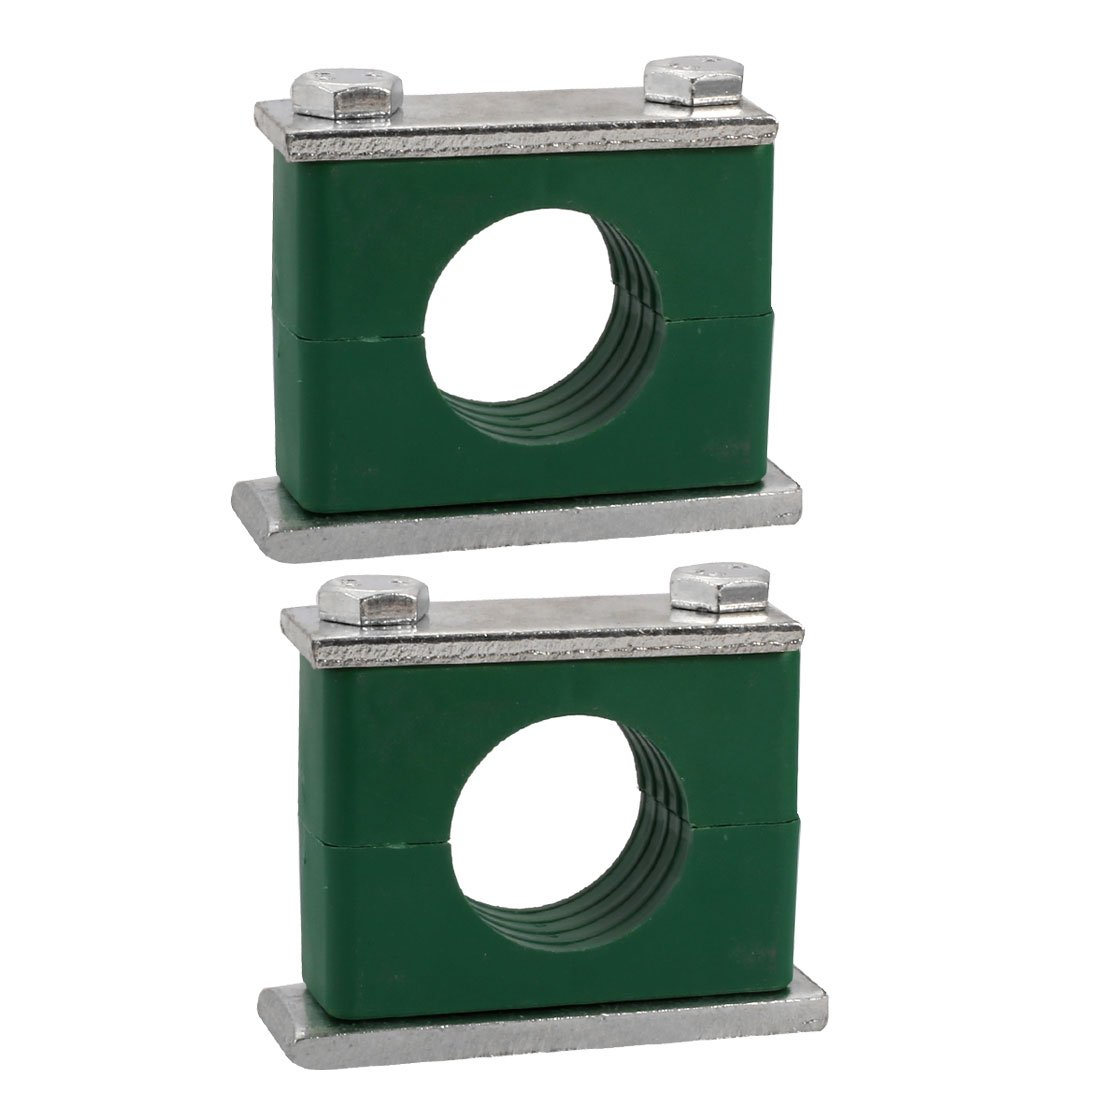 uxcell 42mm Fitting Dia Polypropylene Aluminum Heavy Series Hose Pipe Tube Clamp 2pcs